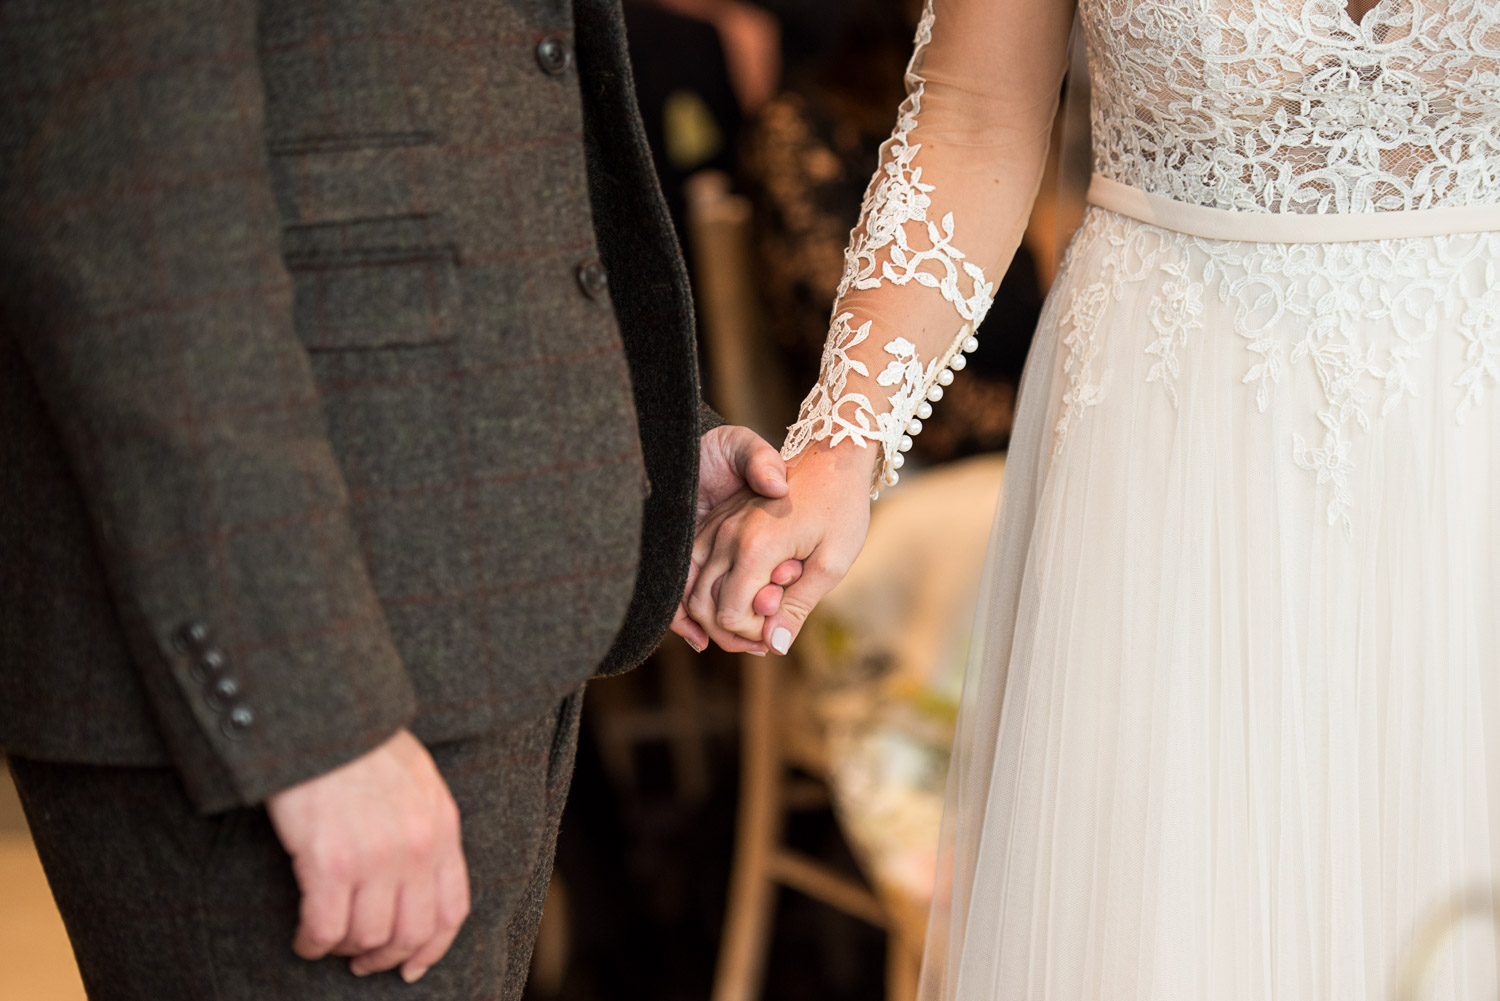 bride and groom holding hands during the wedding ceremony